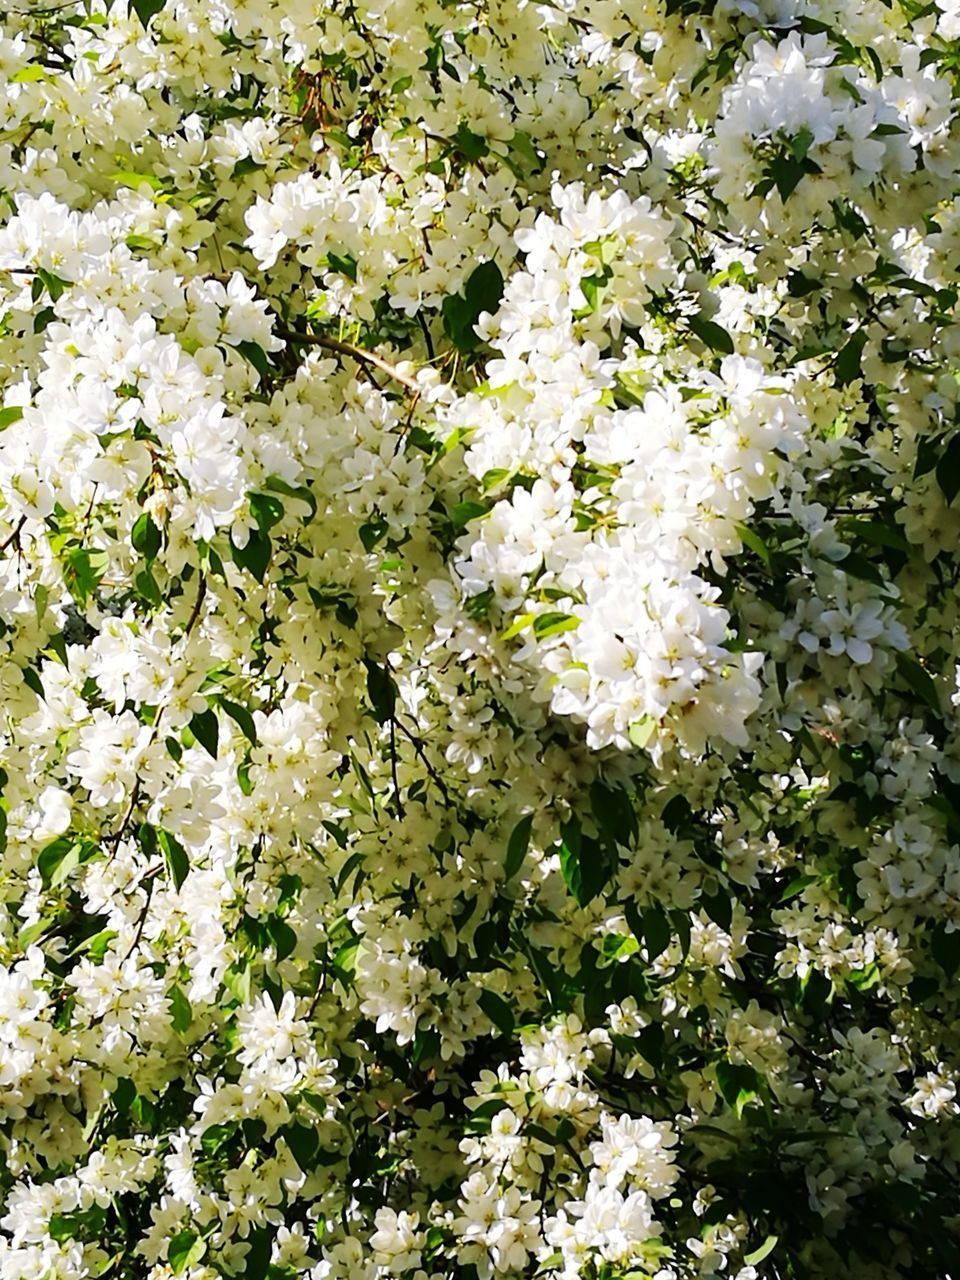 flower, blossom, growth, white color, nature, botany, spring, fragility, no people, freshness, tree, day, outdoors